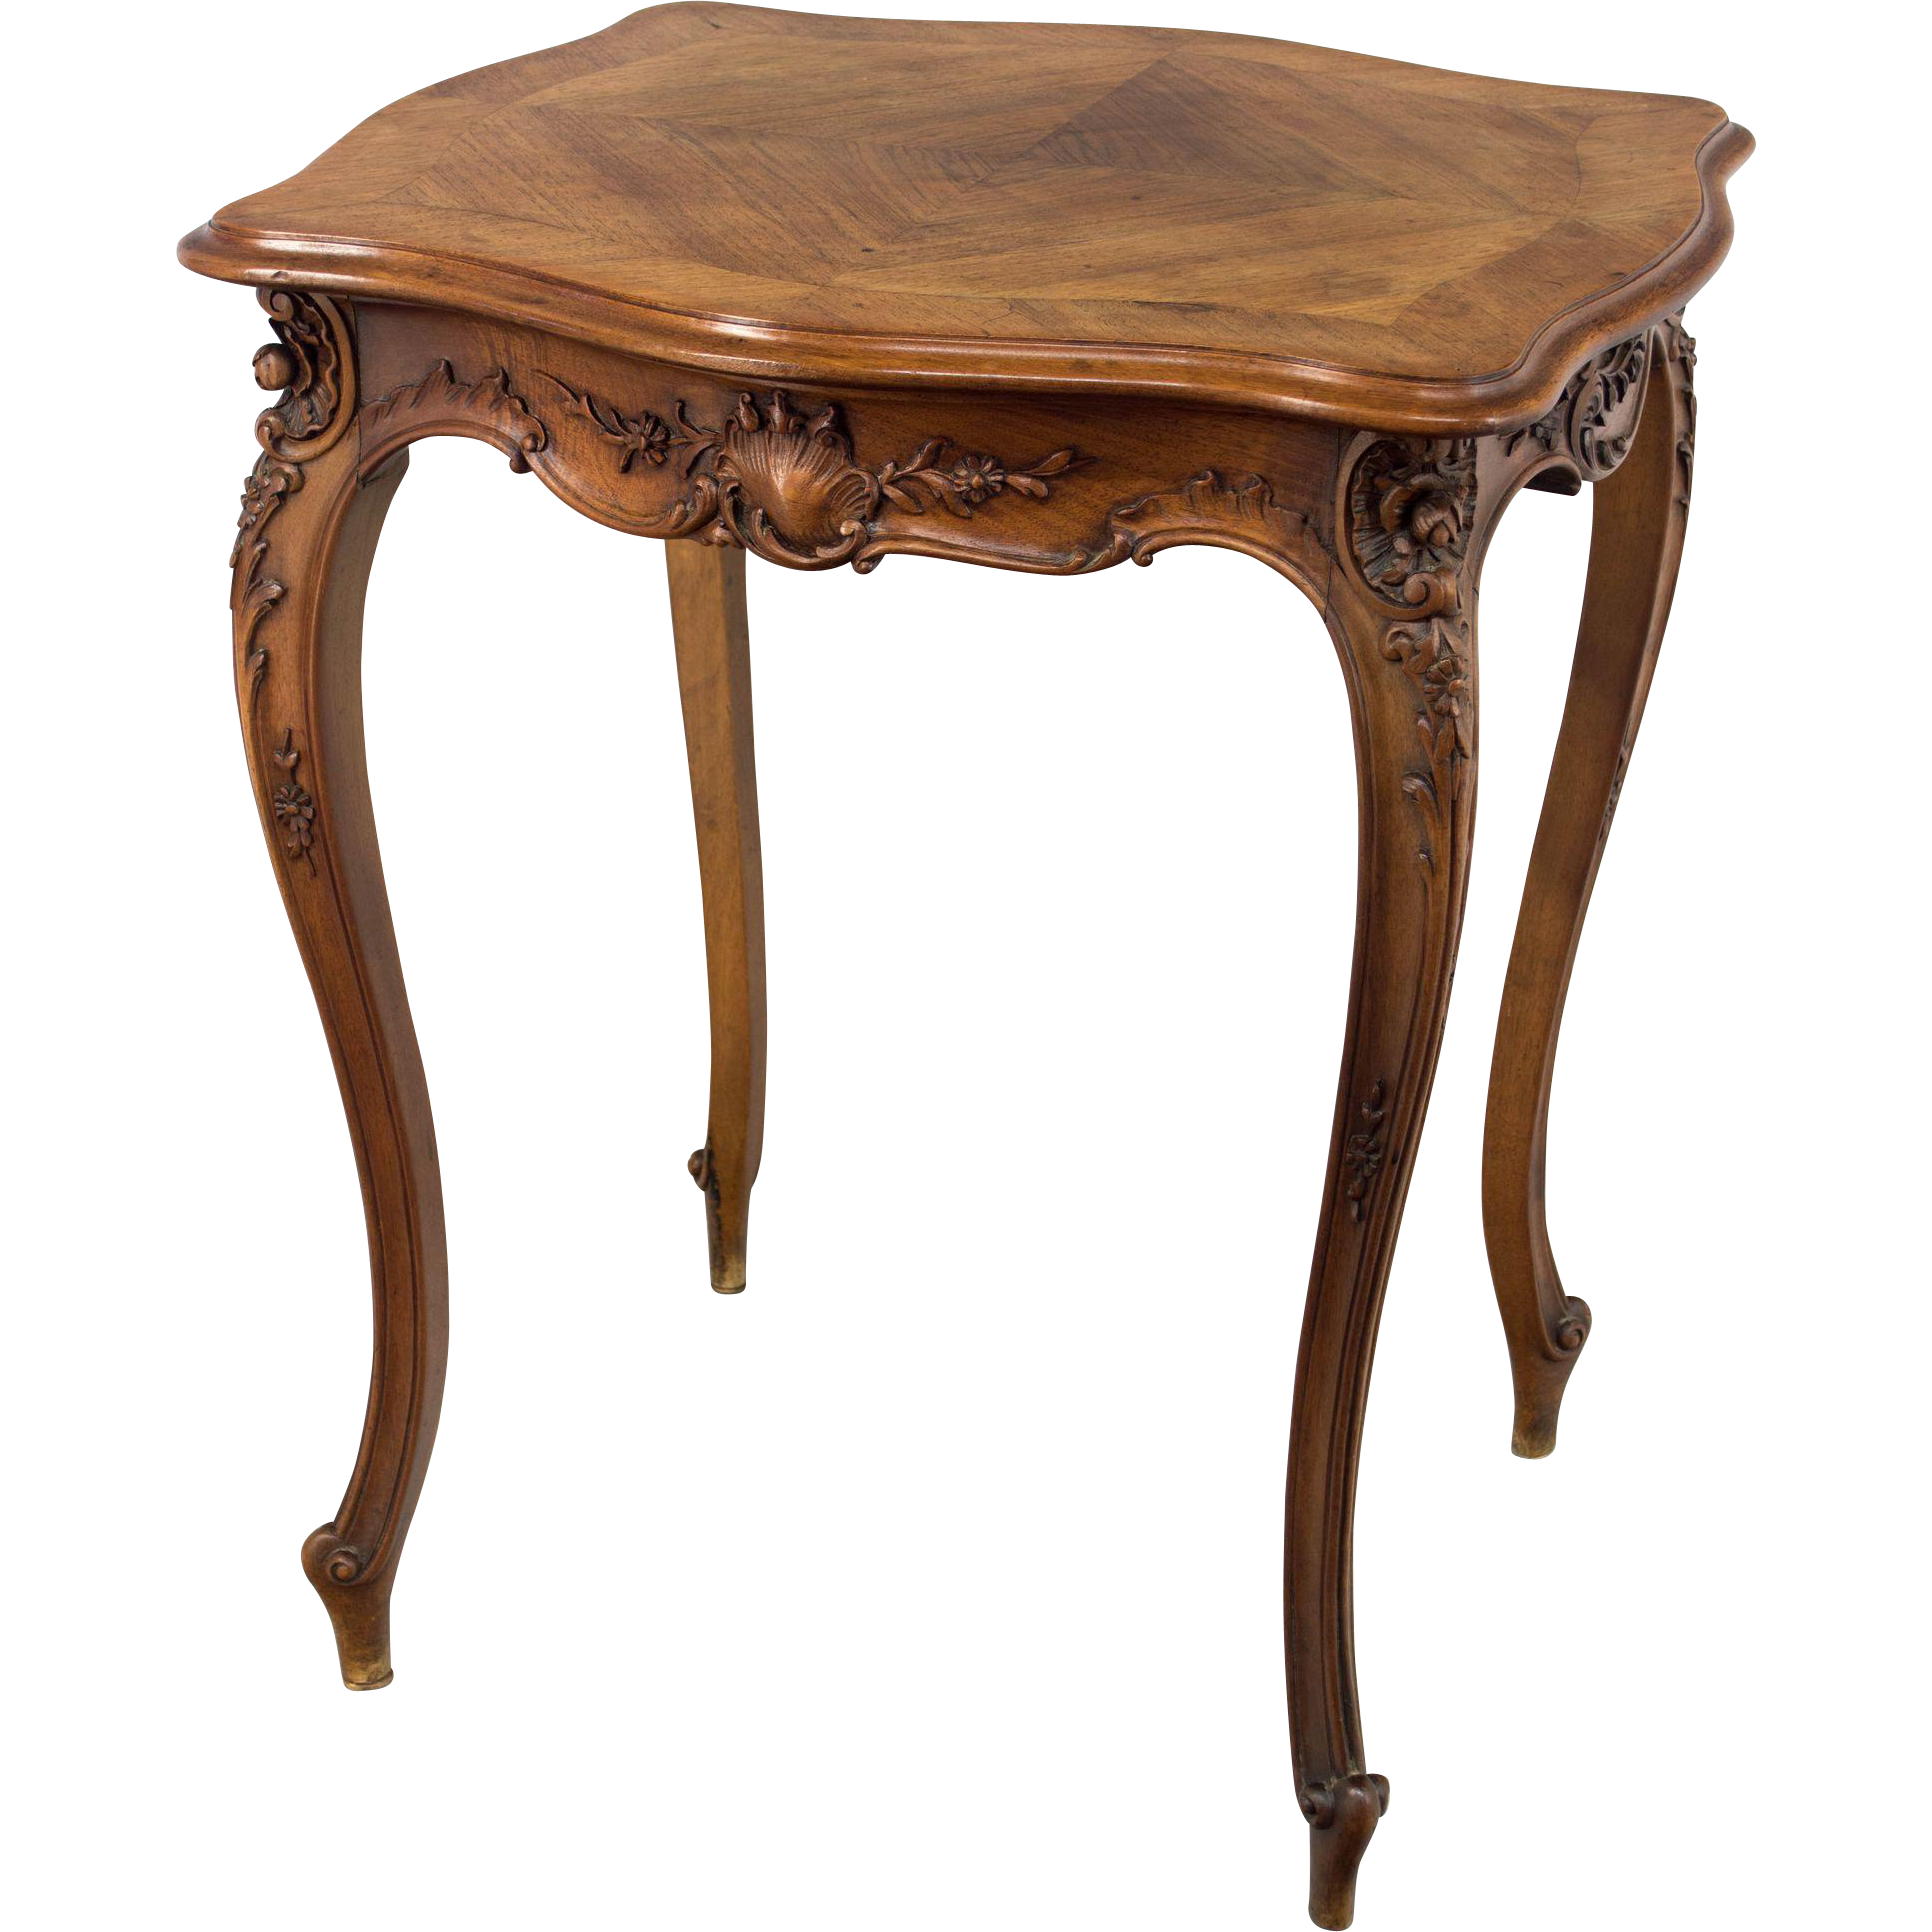 Louis xv style side table sold on ruby lane - Table louis xv ...